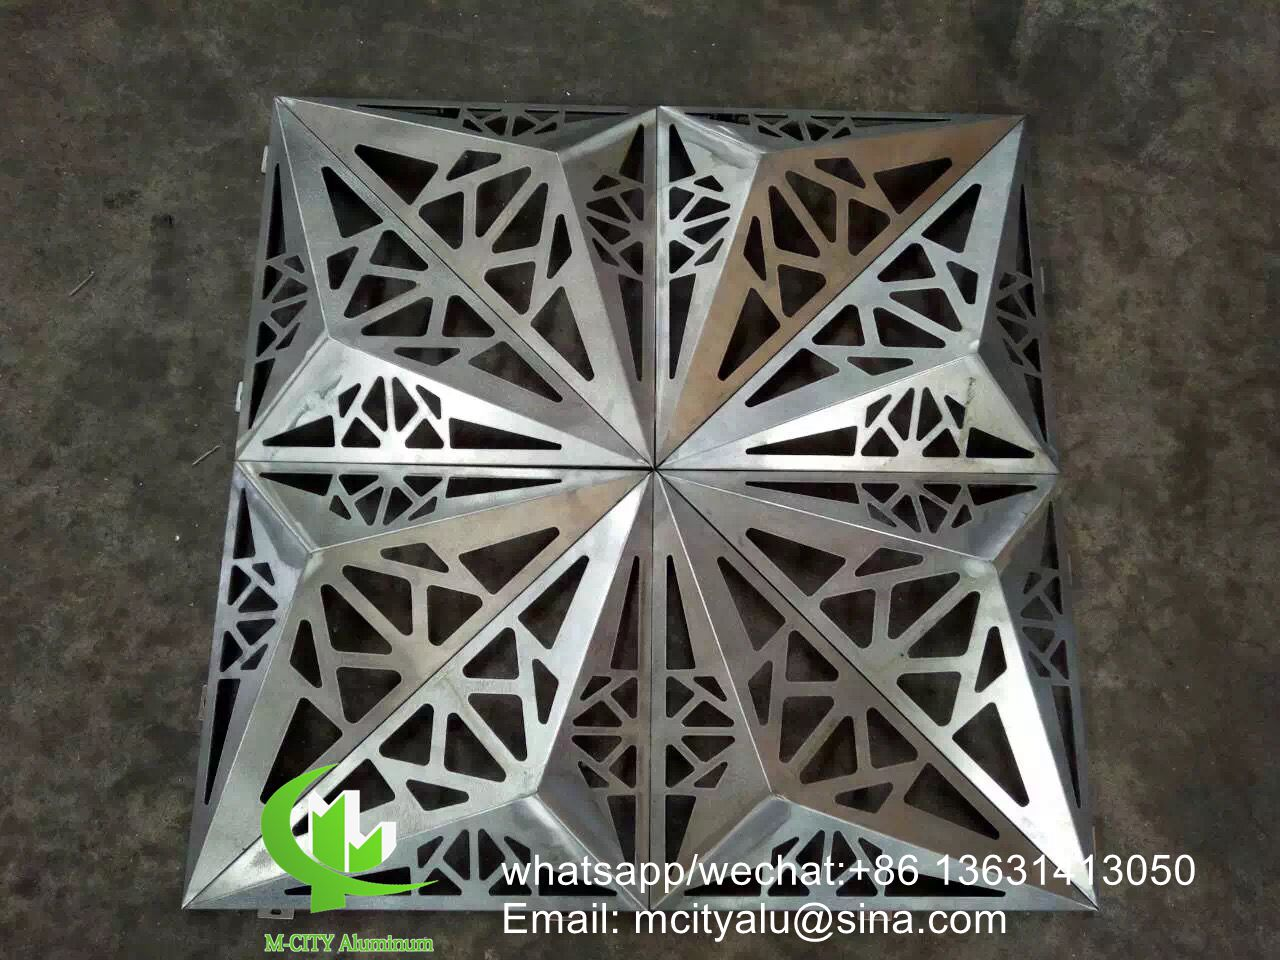 aluminium cladding for facade with perforated patterns